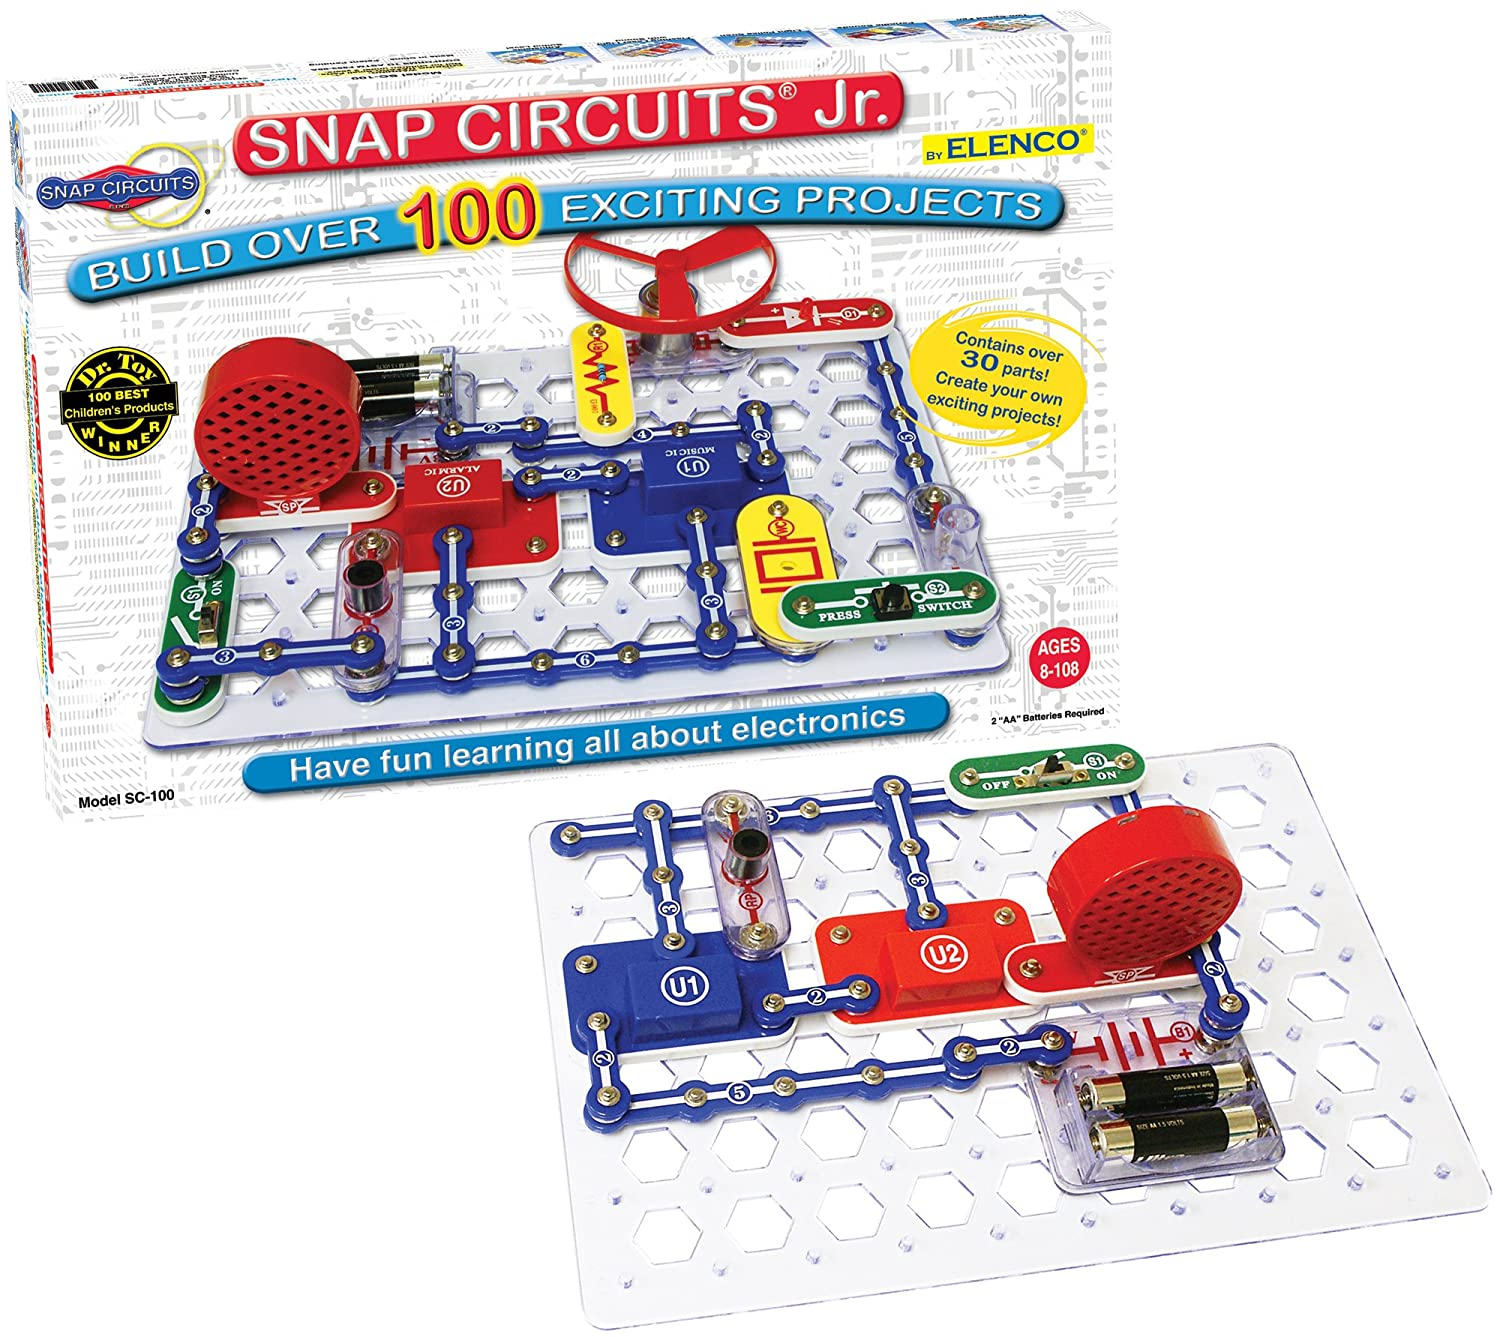 91lfaA93v0L._SL1500_ amazon com snap circuits jr sc 100 electronics discovery kit circuit builder fuse box at soozxer.org